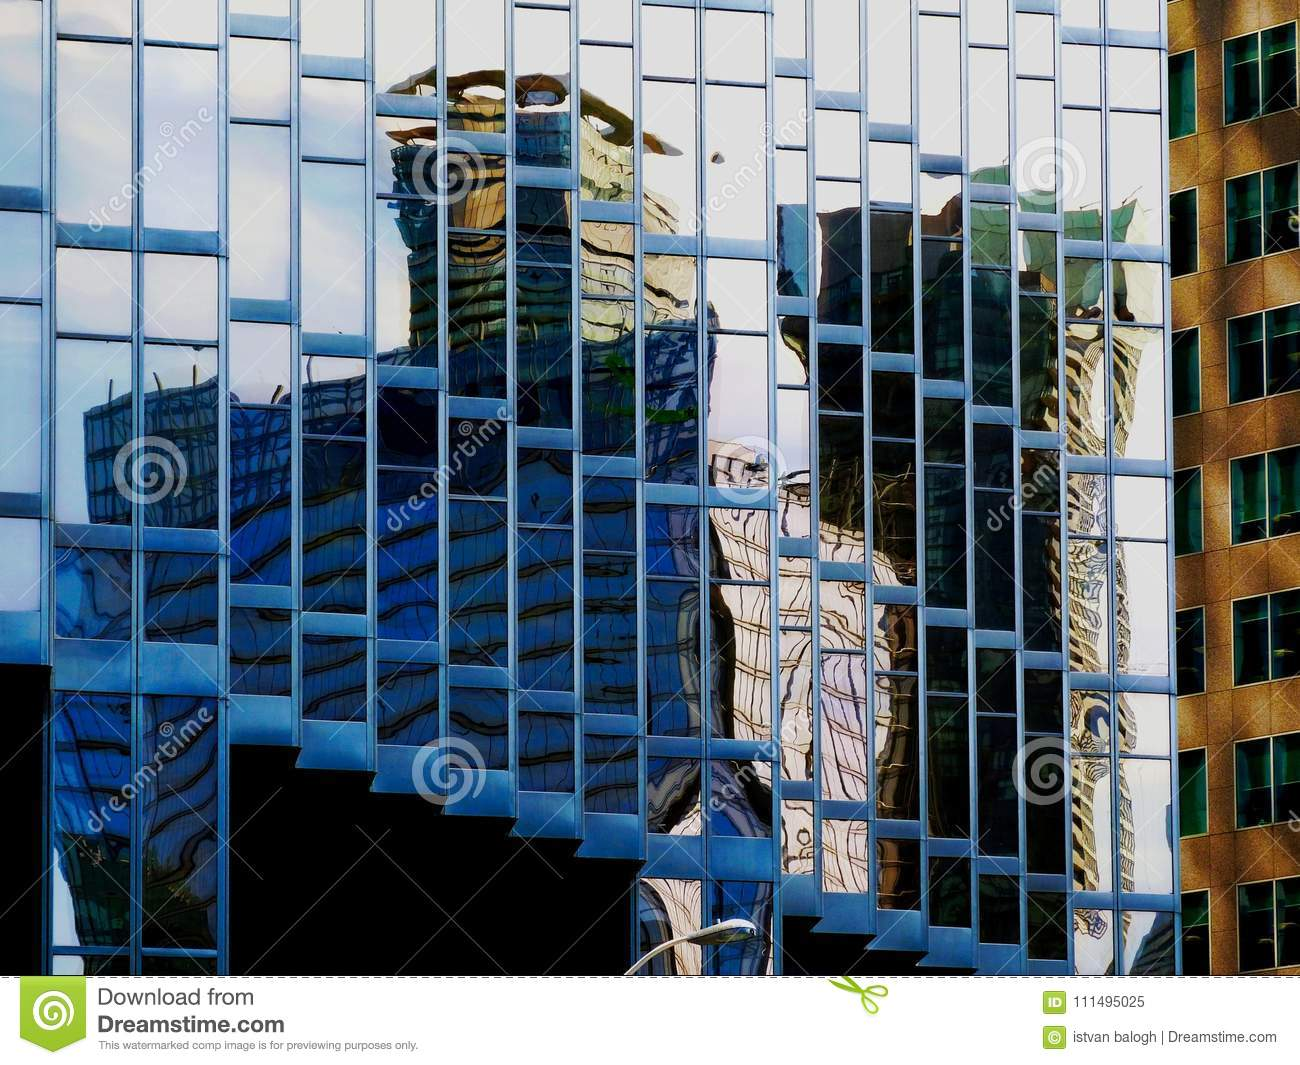 Architectural Abstract of Glass Office Tower Downtown